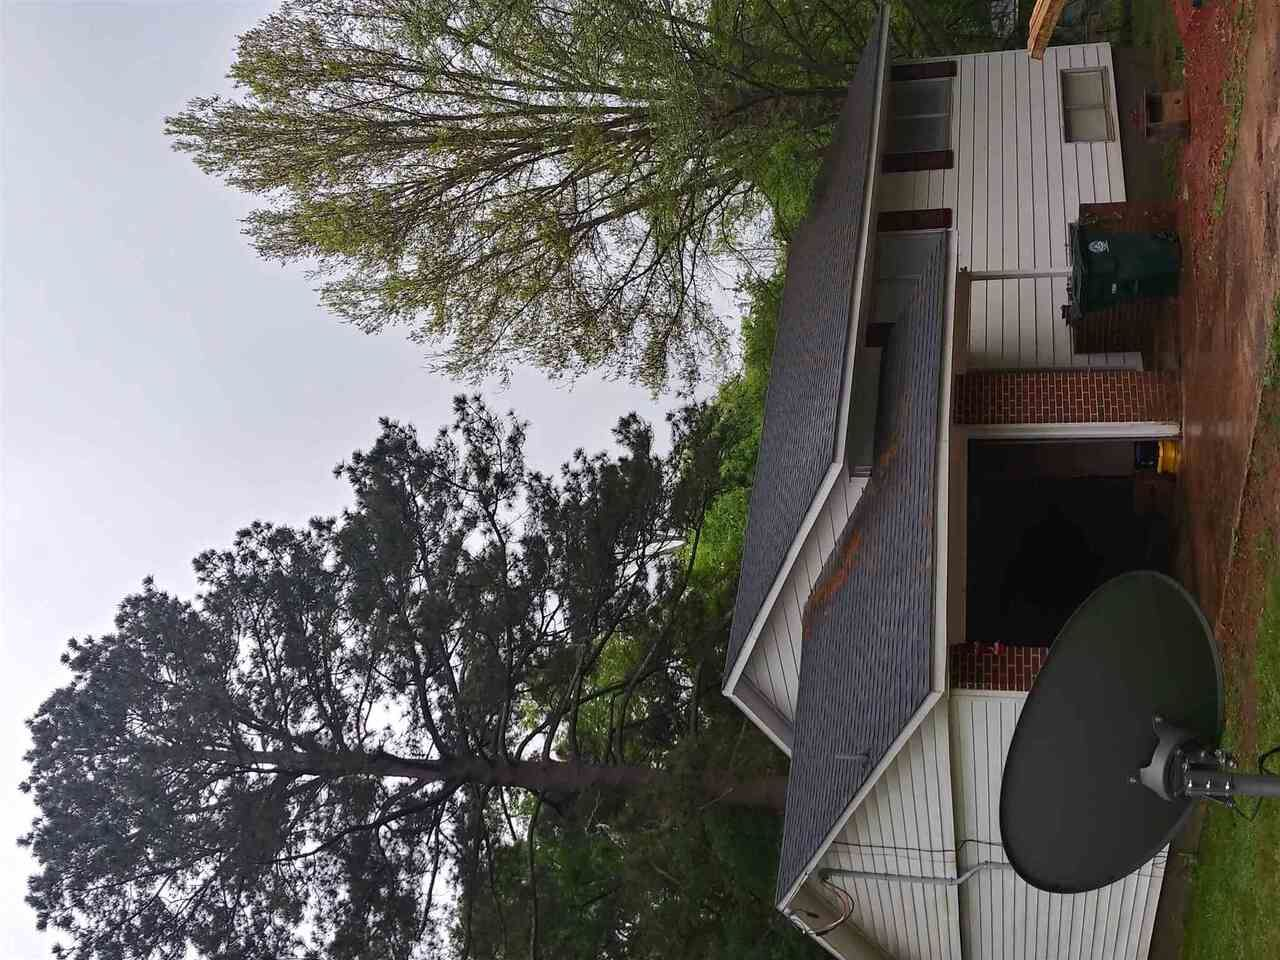 851 S Forest Lake Dr, Macon, GA 31210 - MLS#: 8958812